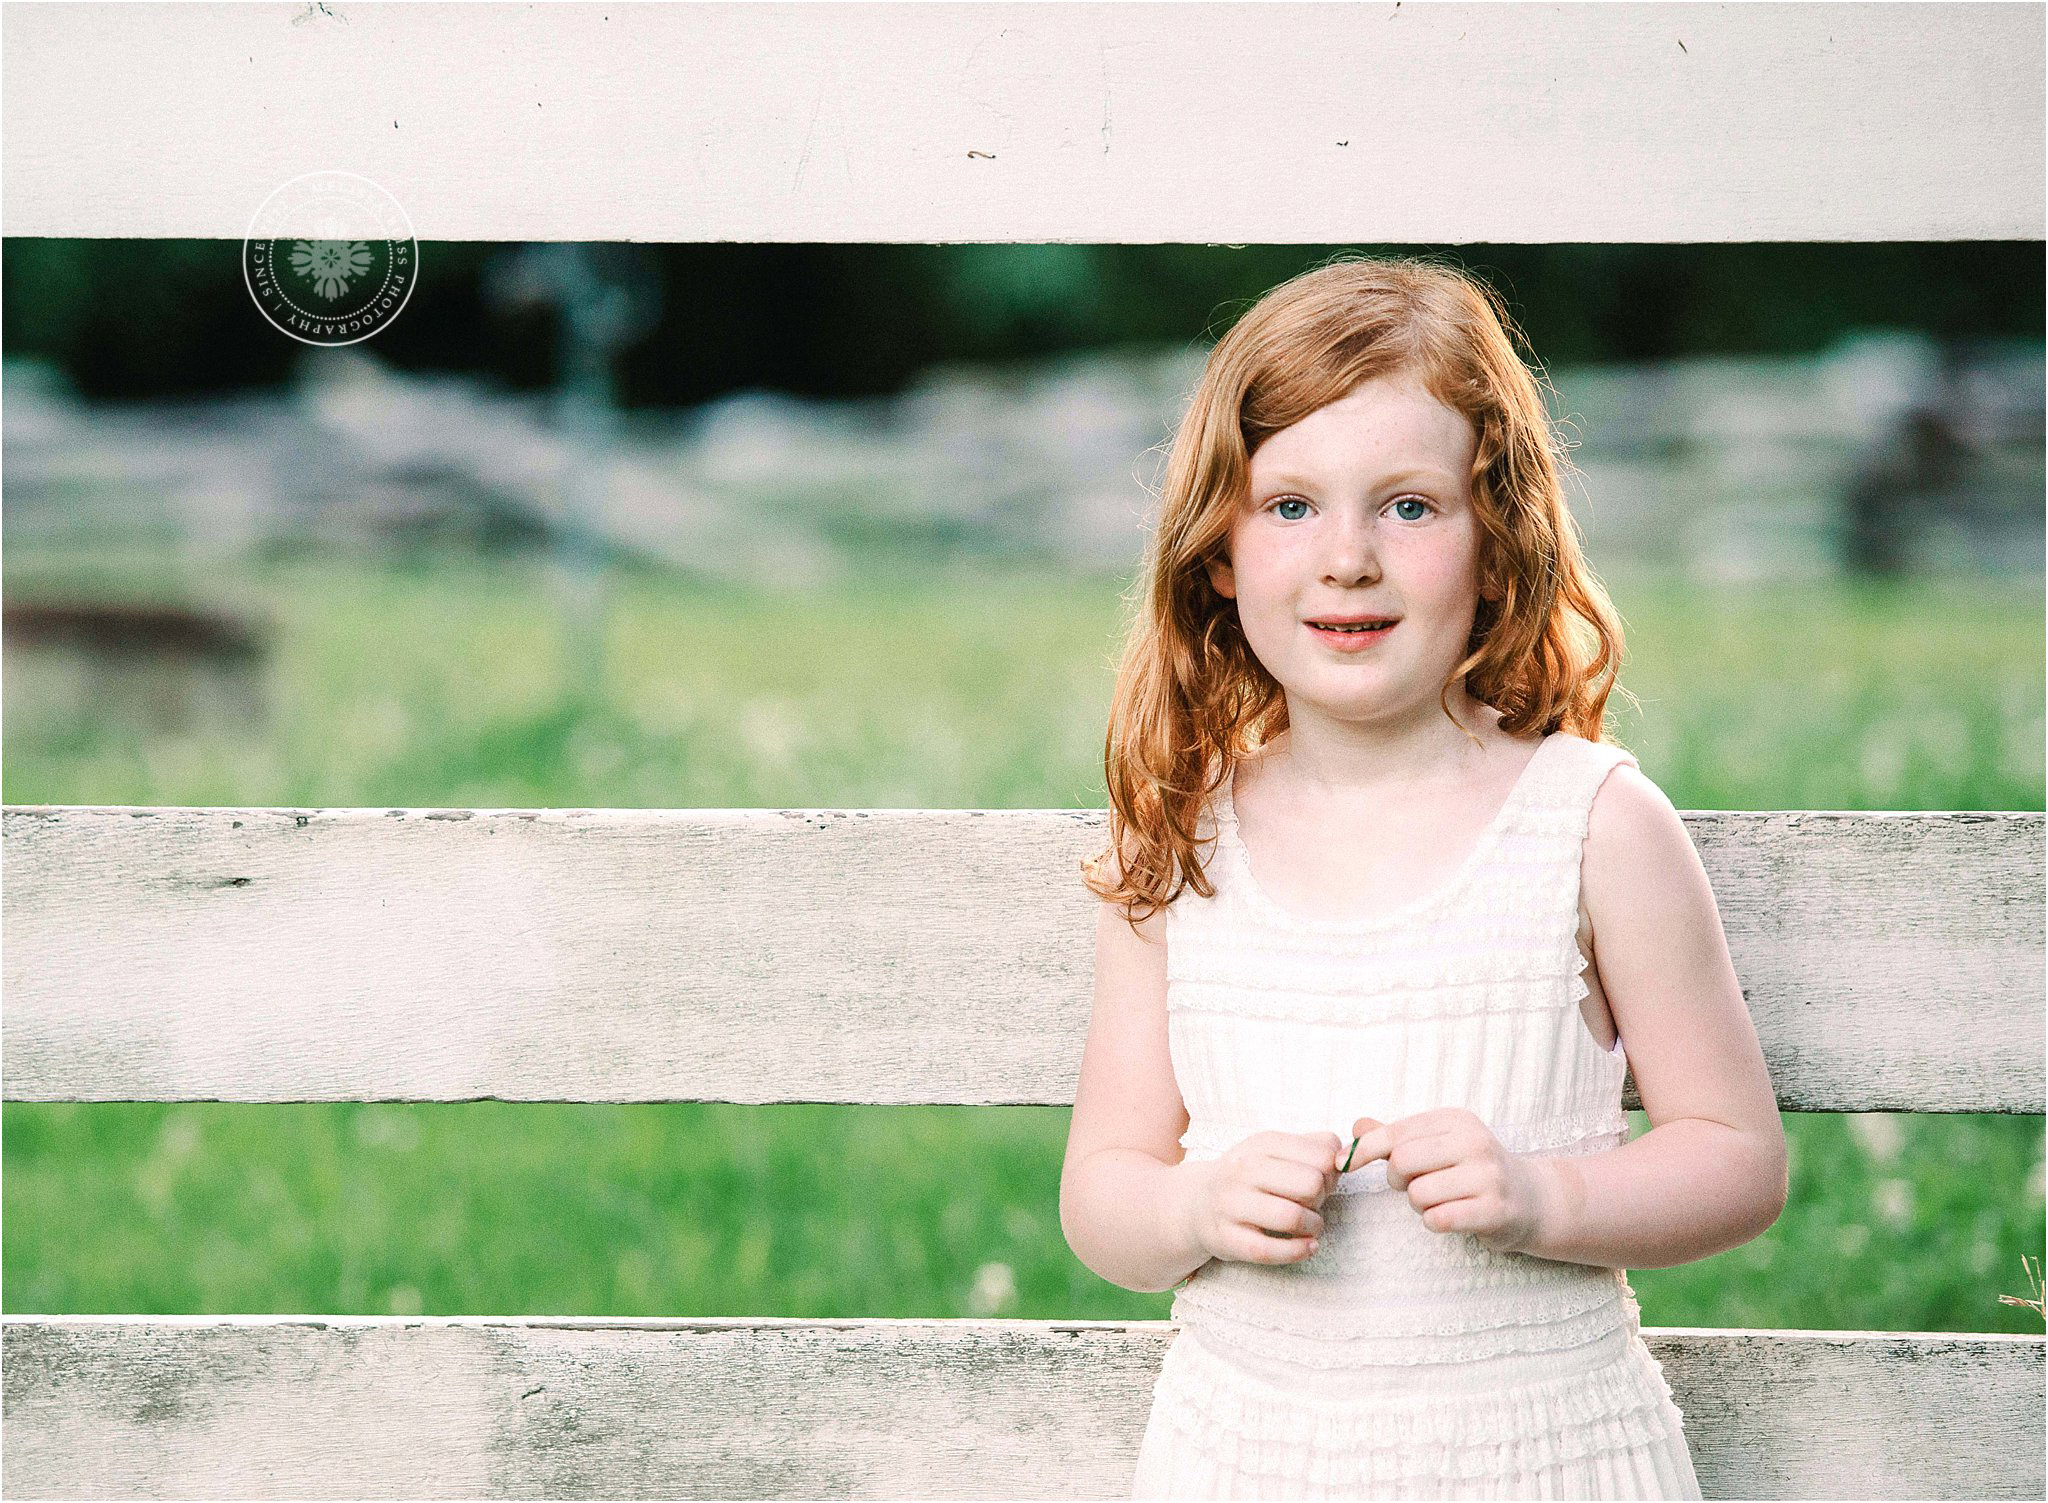 virginia-beach-norfolk-child-portrait-photographer-melissa-bliss-photography